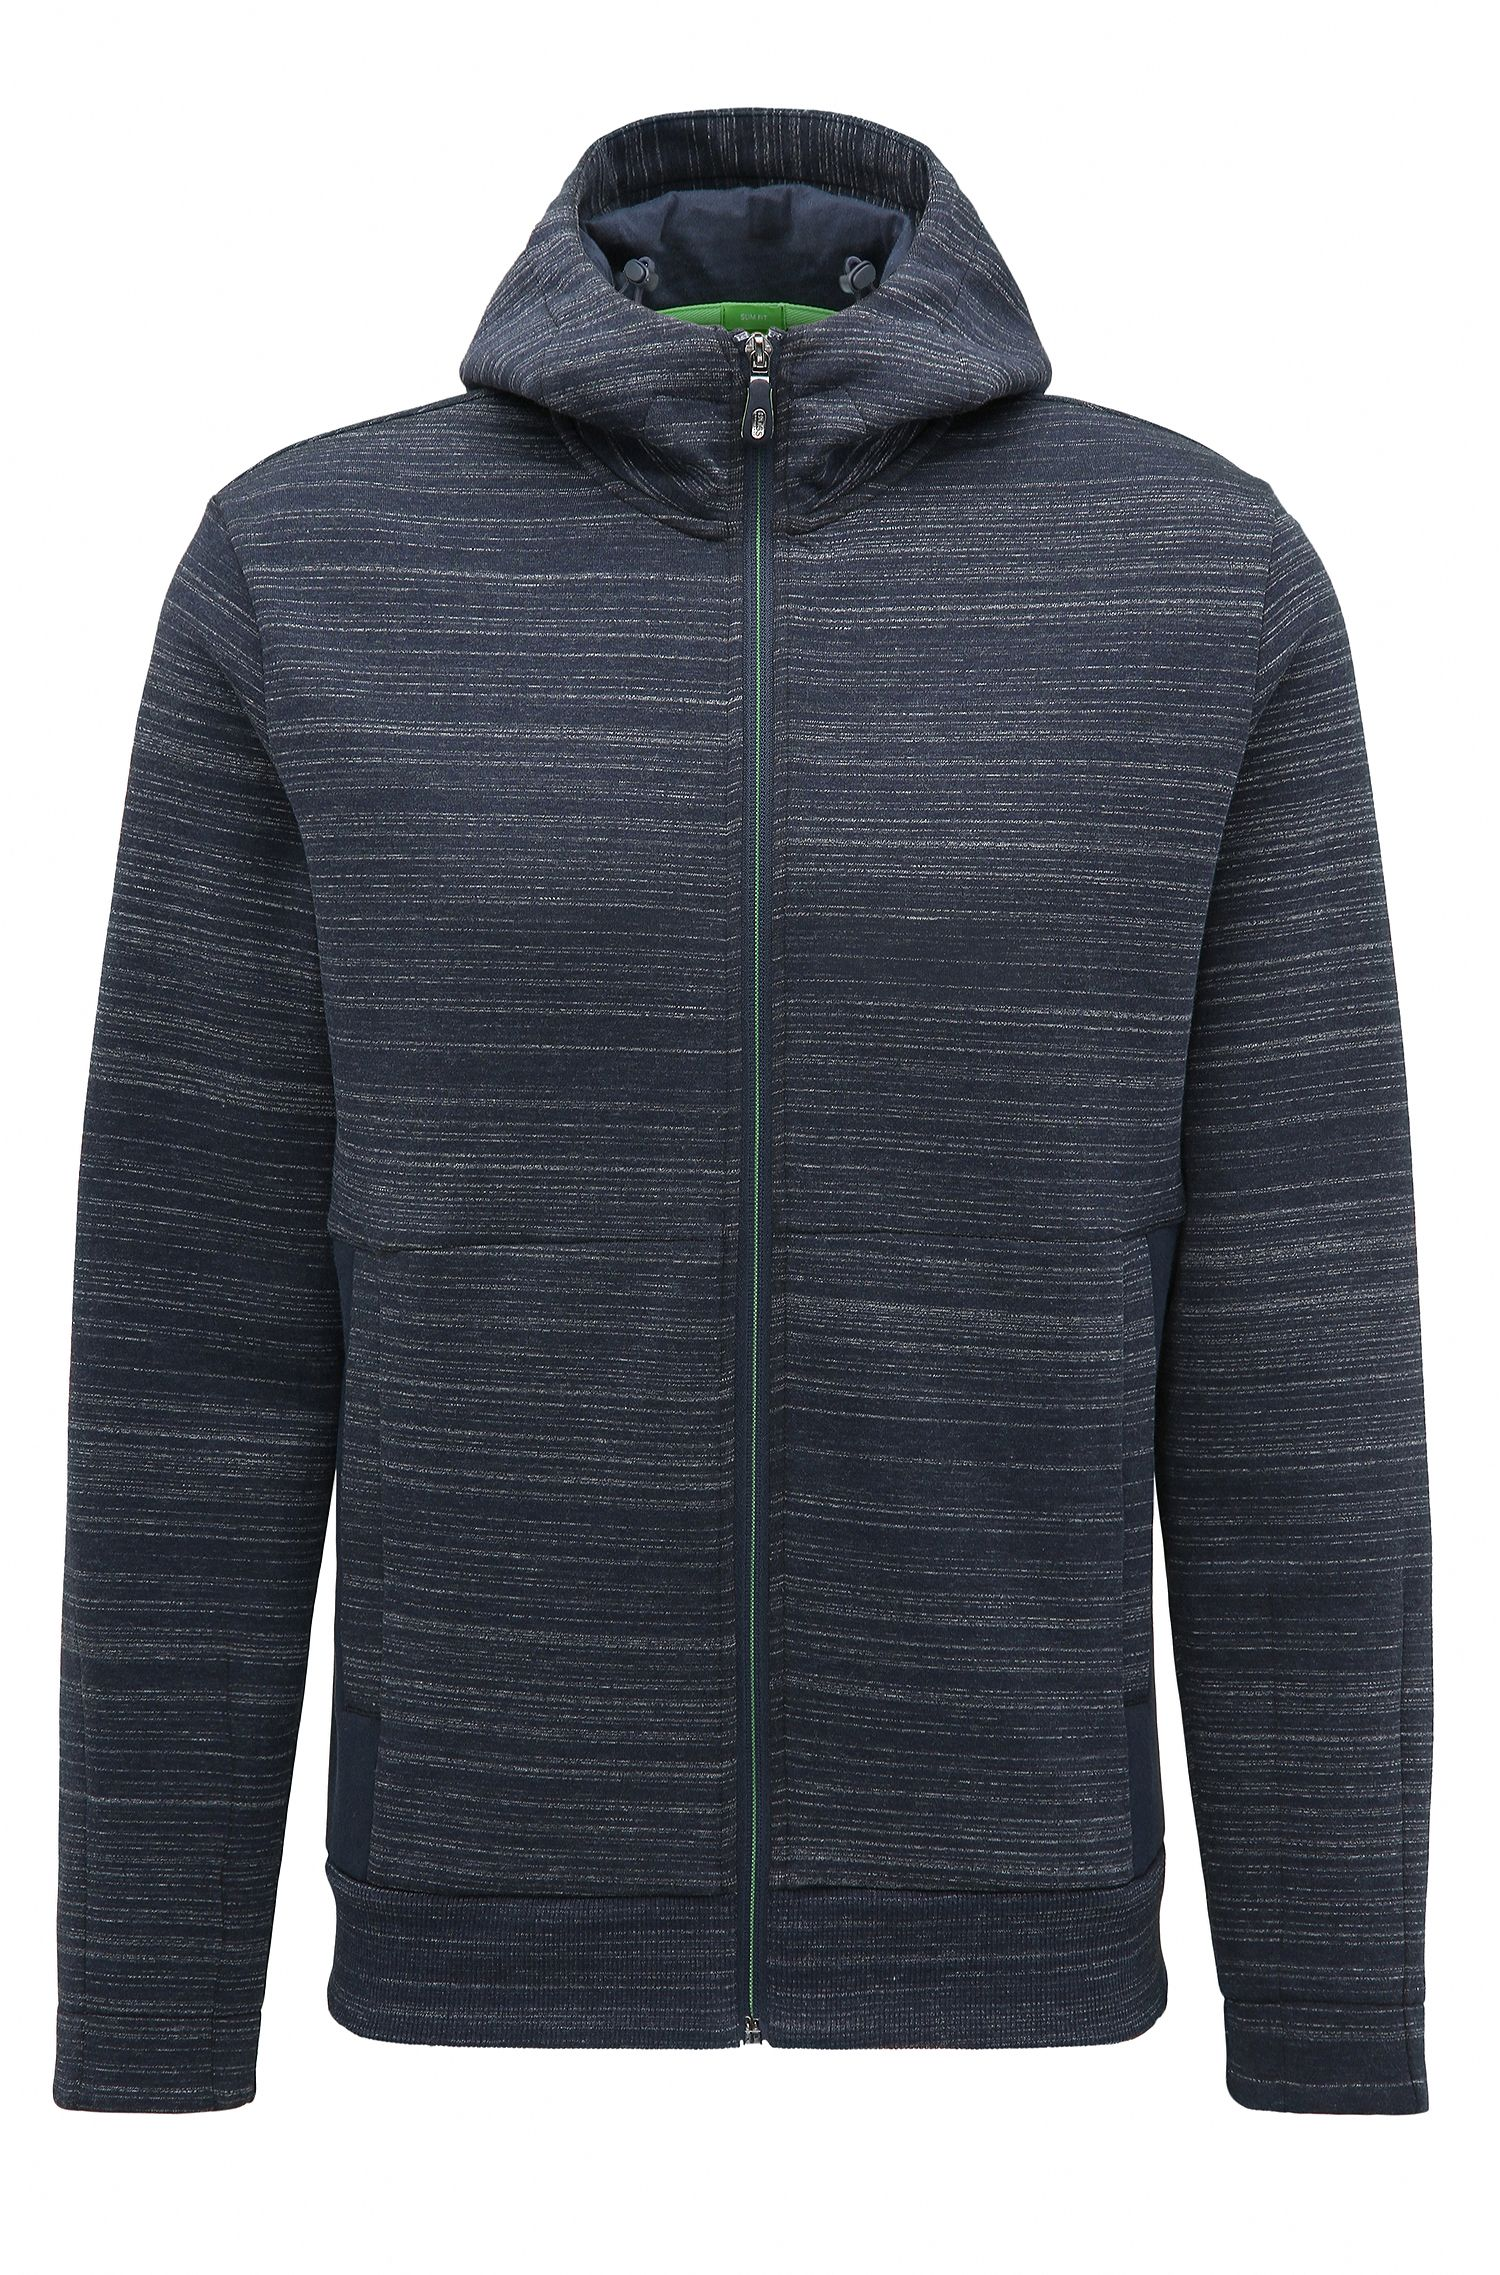 Slim-fit hooded sweater in a cotton blend